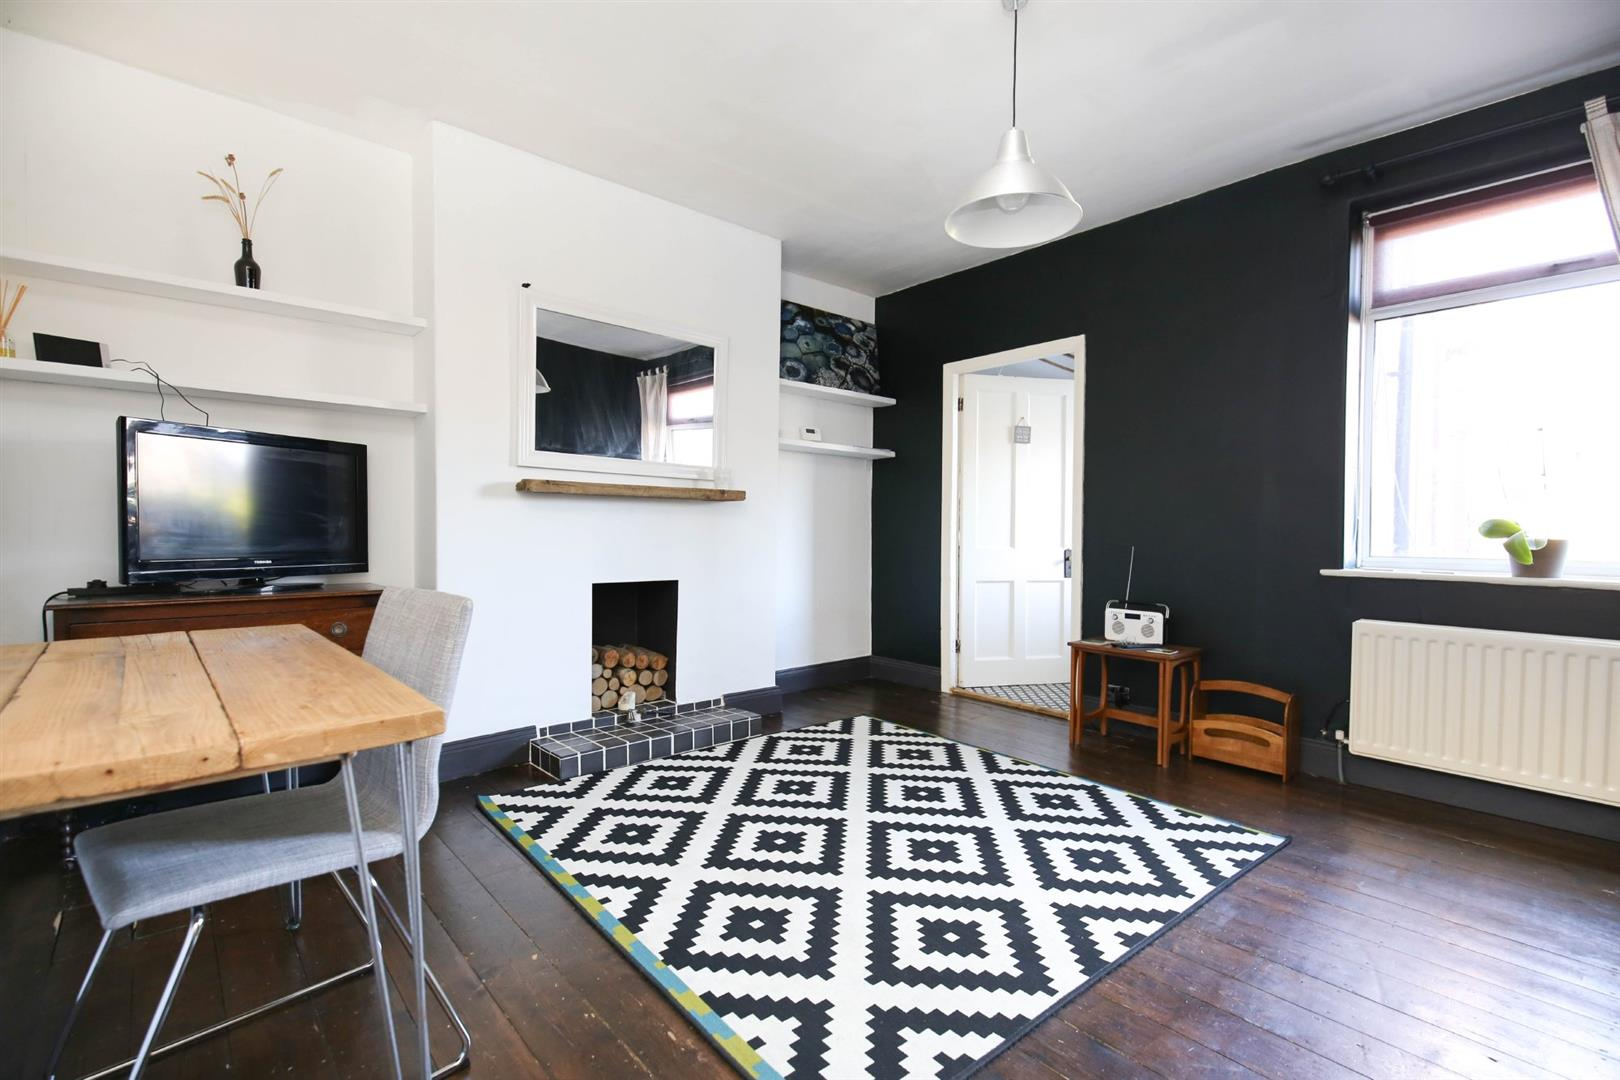 2 bed flat for sale in Newcastle Upon Tyne, NE6 2TH  - Property Image 1